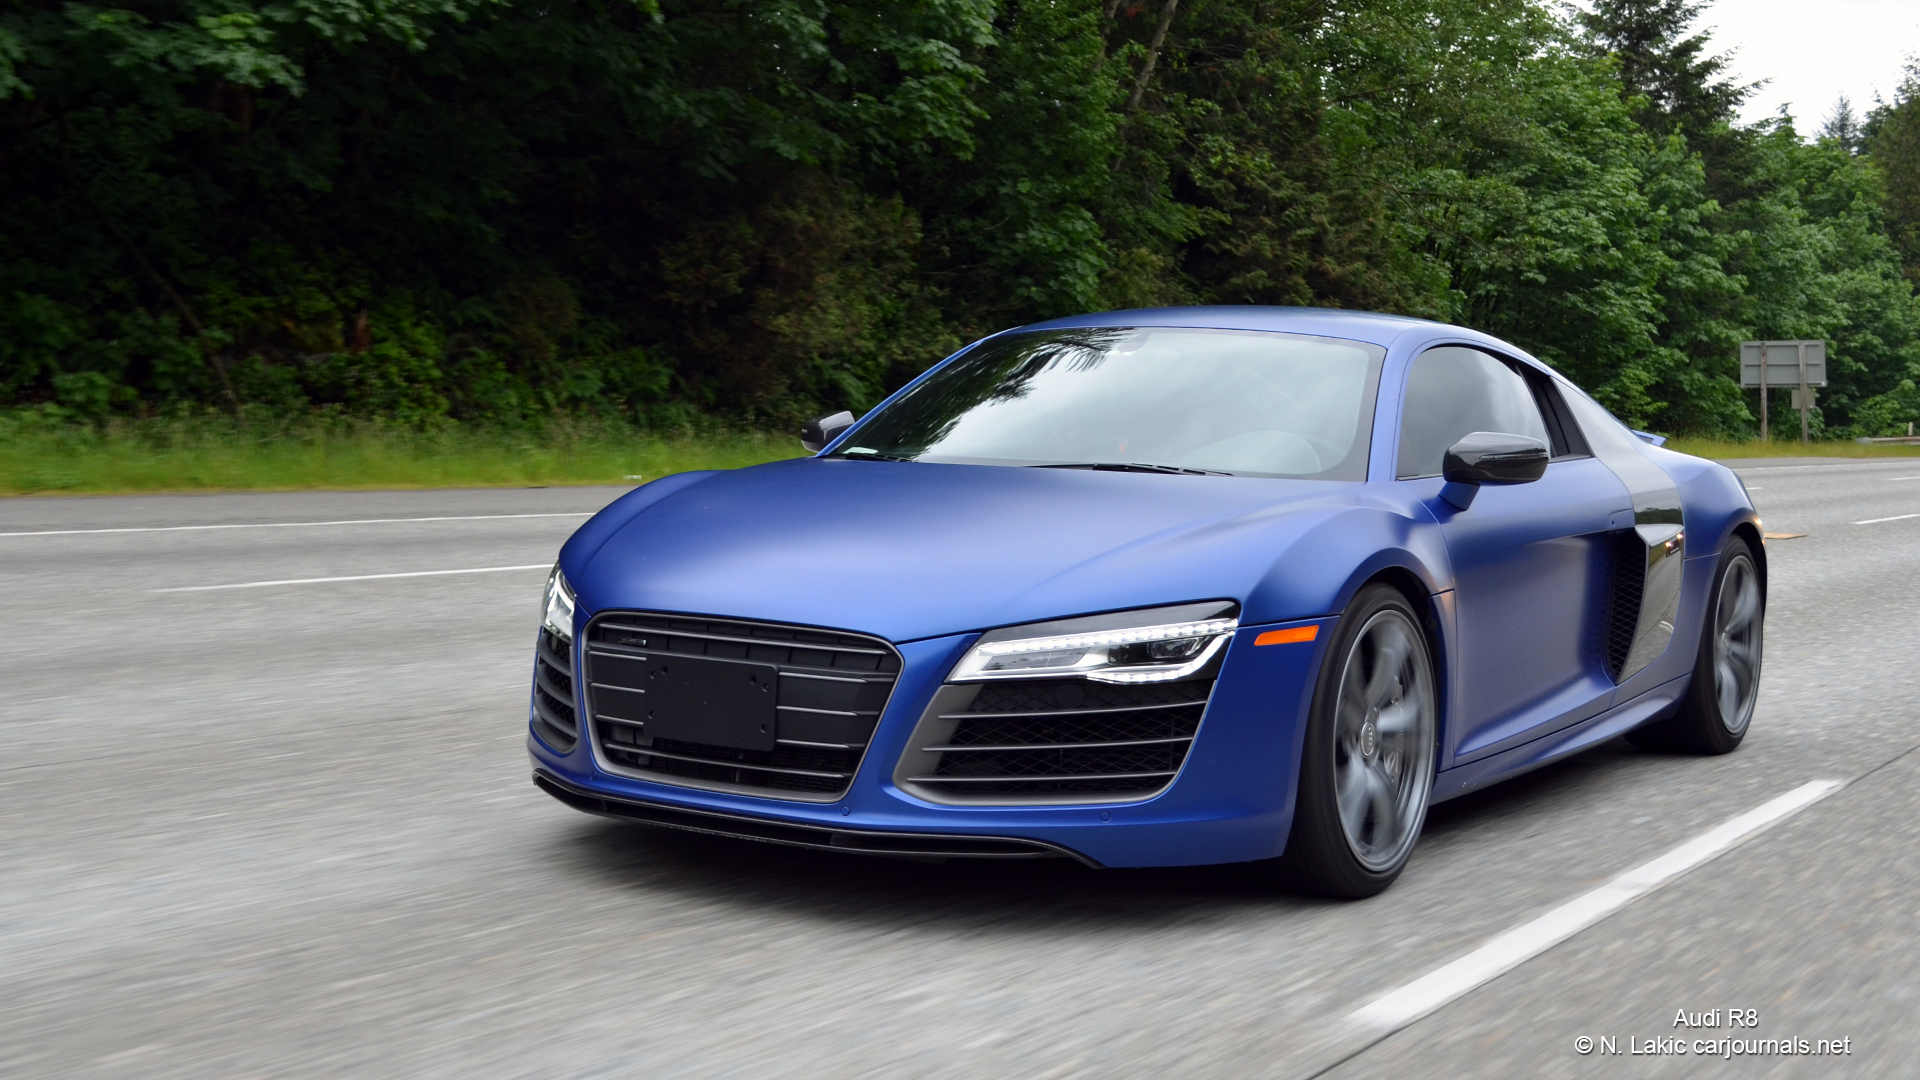 HD Car Wallpapers U2013 Blue Audi R8   Car Journals